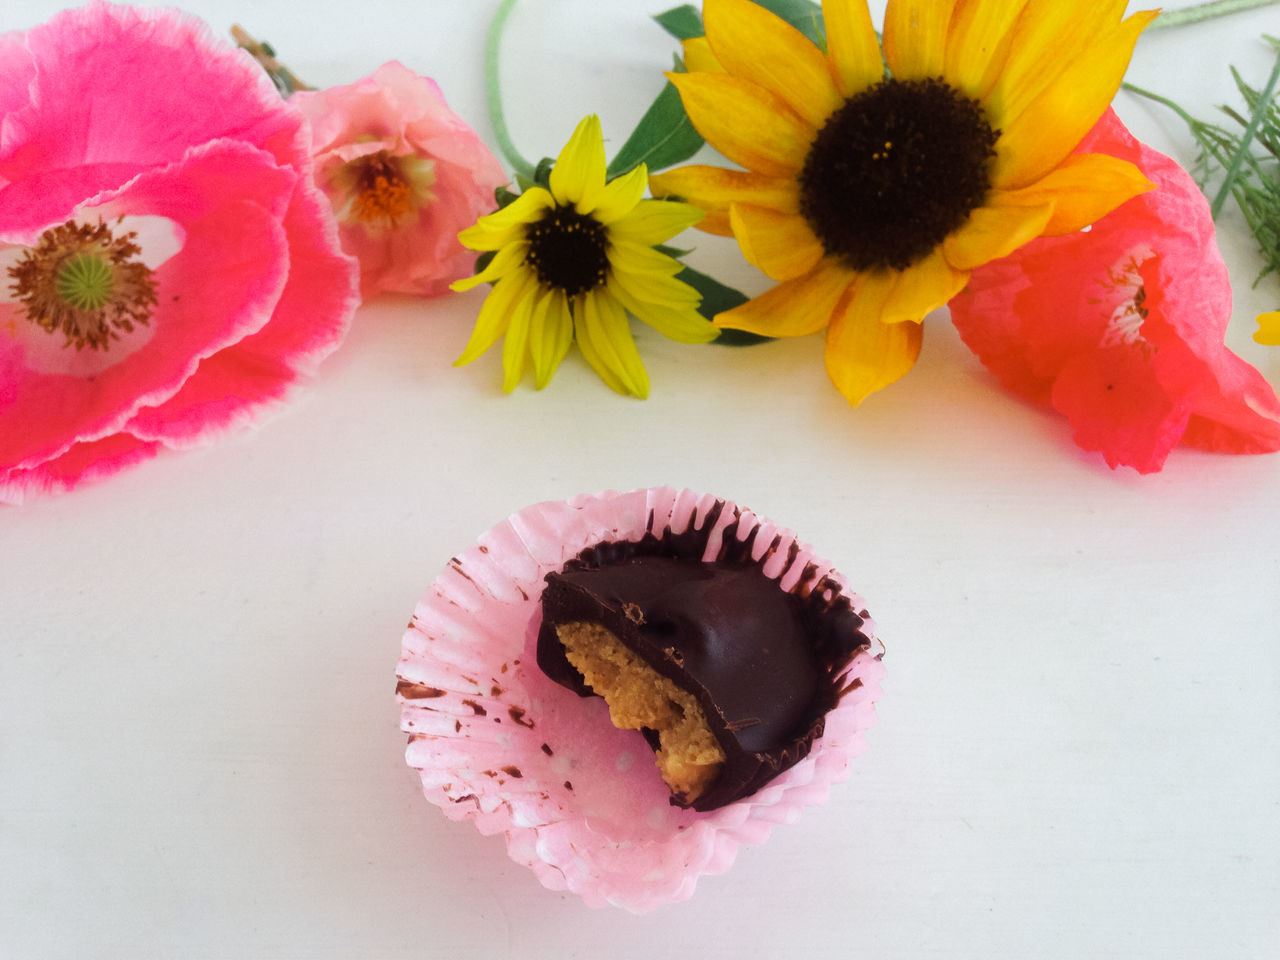 Chocolate Dessert Flower Flower Head Flowers Freshness High Angle View Homemade Indoors  No People Peanut Butter Petal Pink Pink Color Plate Poppy Flowers Sunflower Sweet Food Sweets Valentine's Day